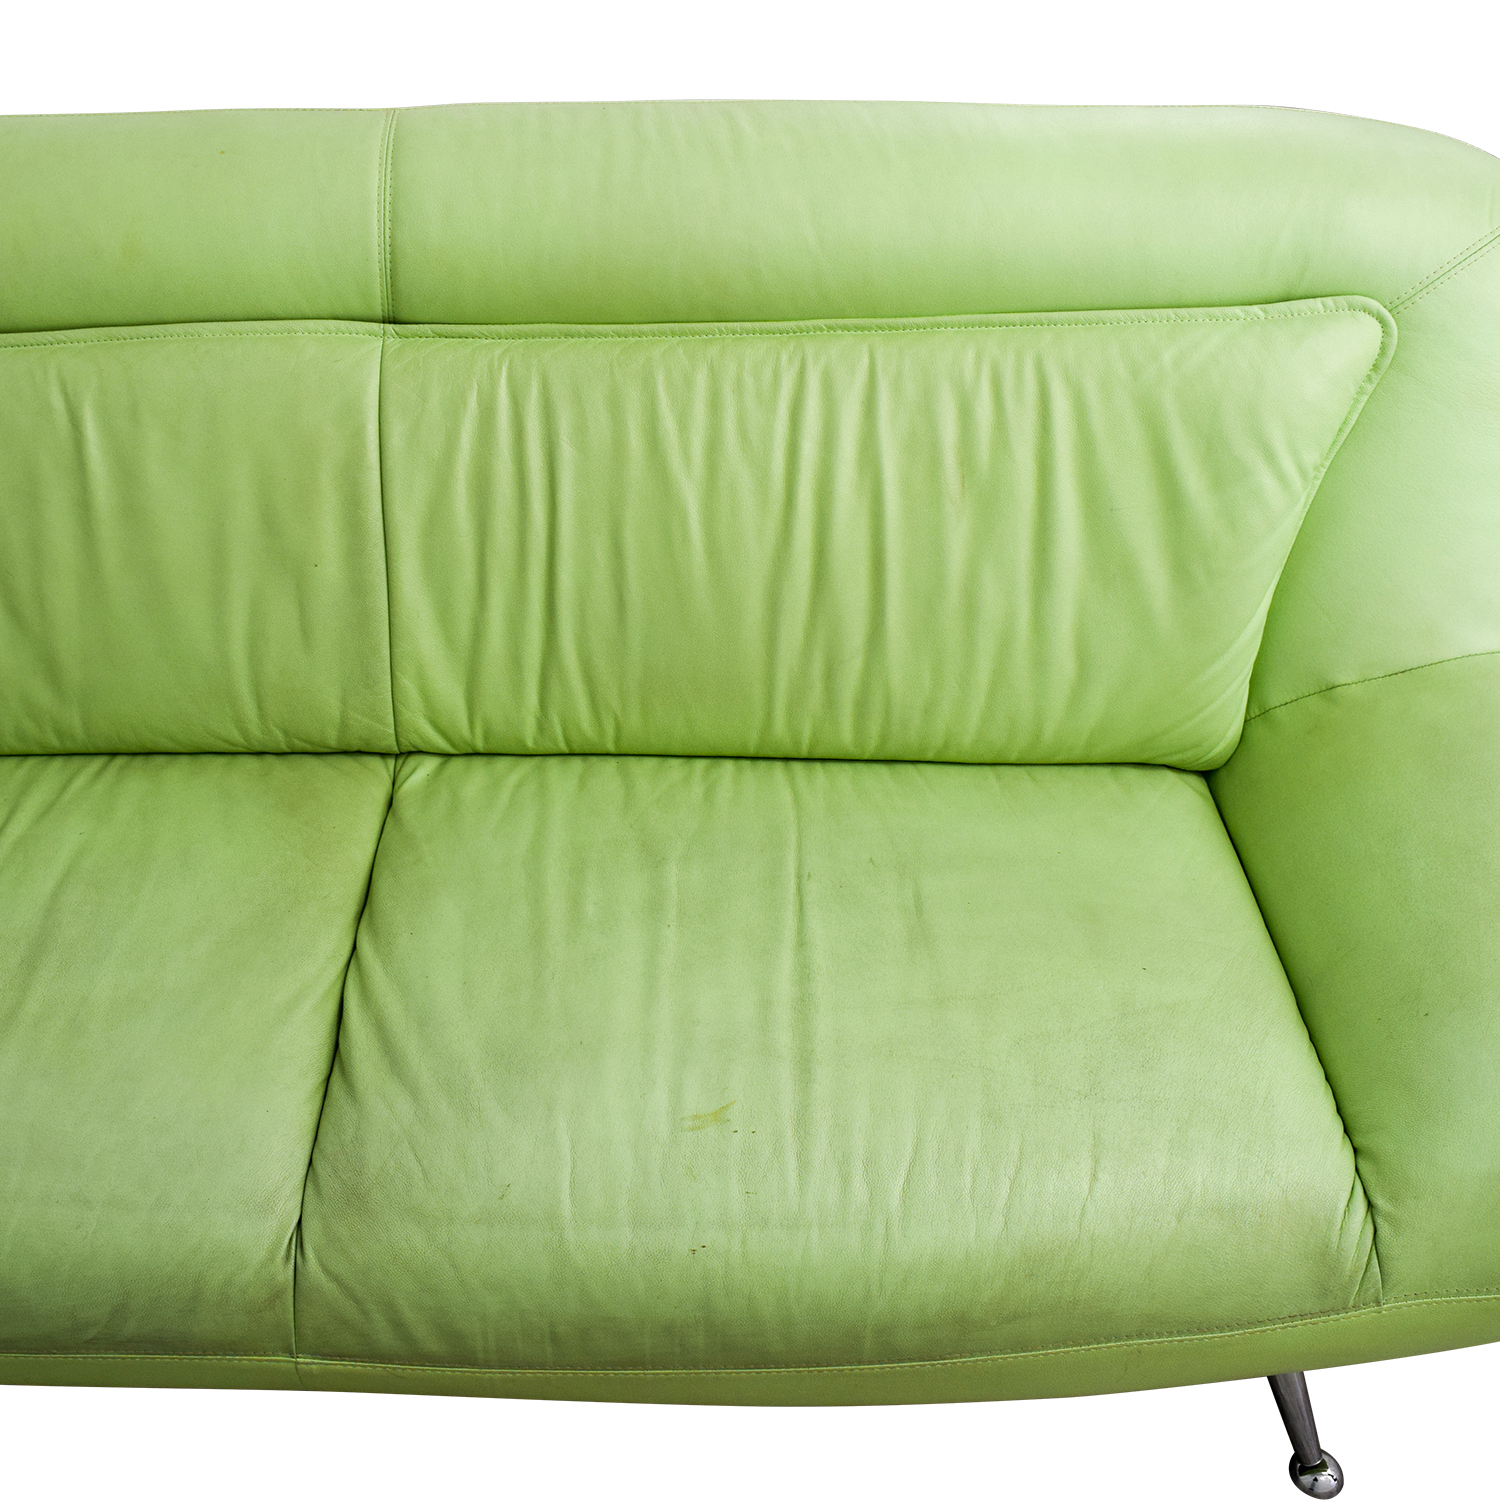 89 Off Italian Mint Green Leather Two Cushion Sofa Sofas